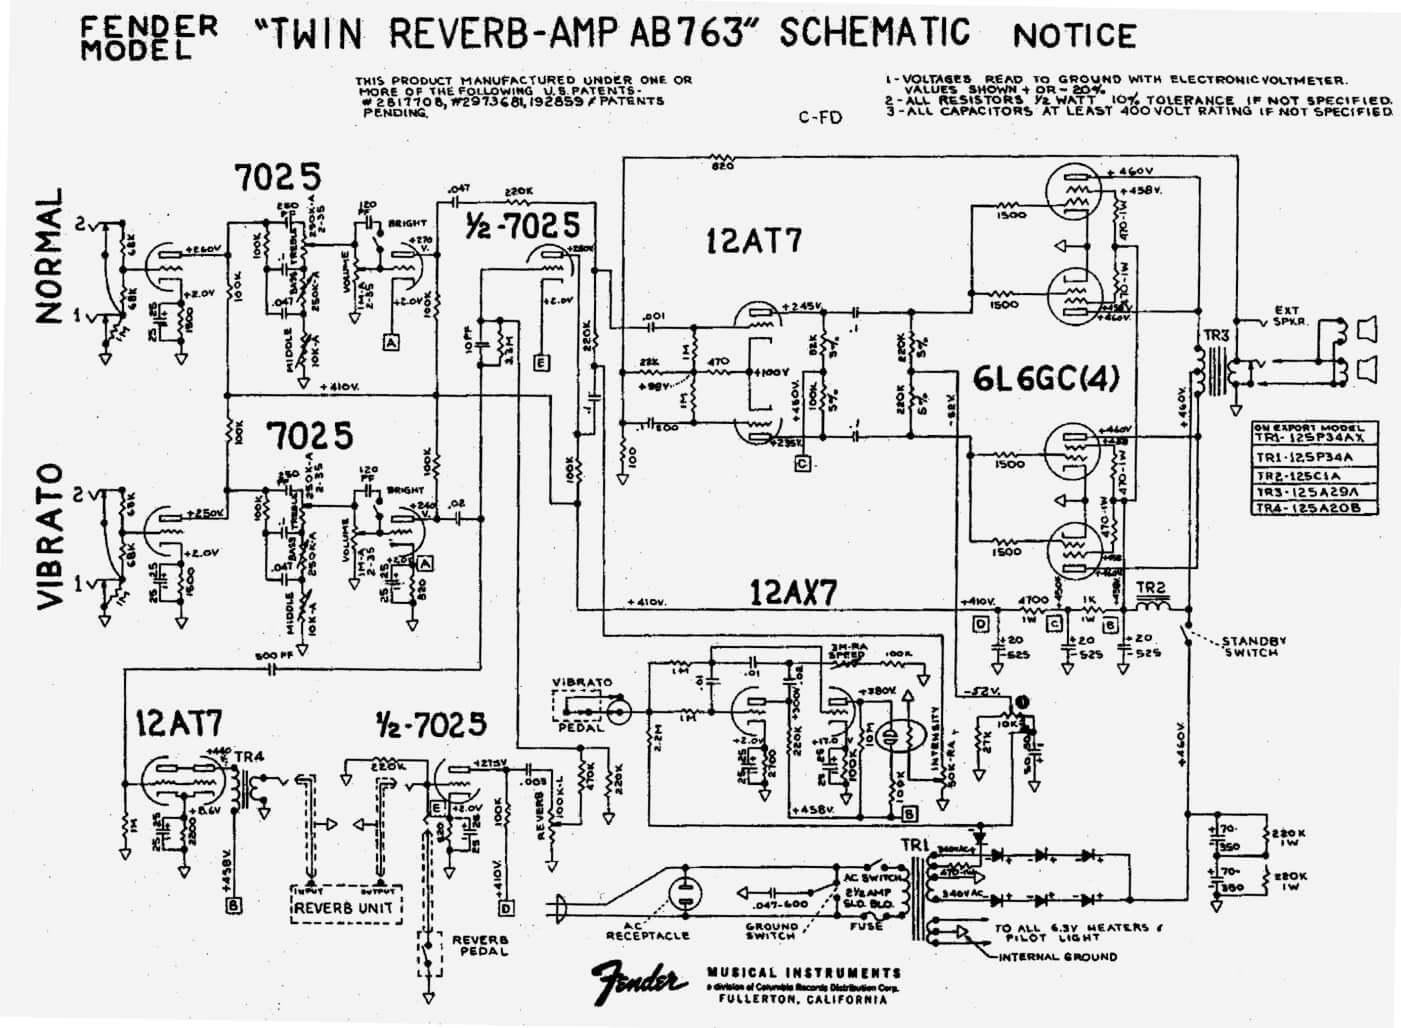 Fender Twin Reverb Schematic Furthermore Concert On Suzuki X90 Wiring Diagram Amp Schematics Ab763